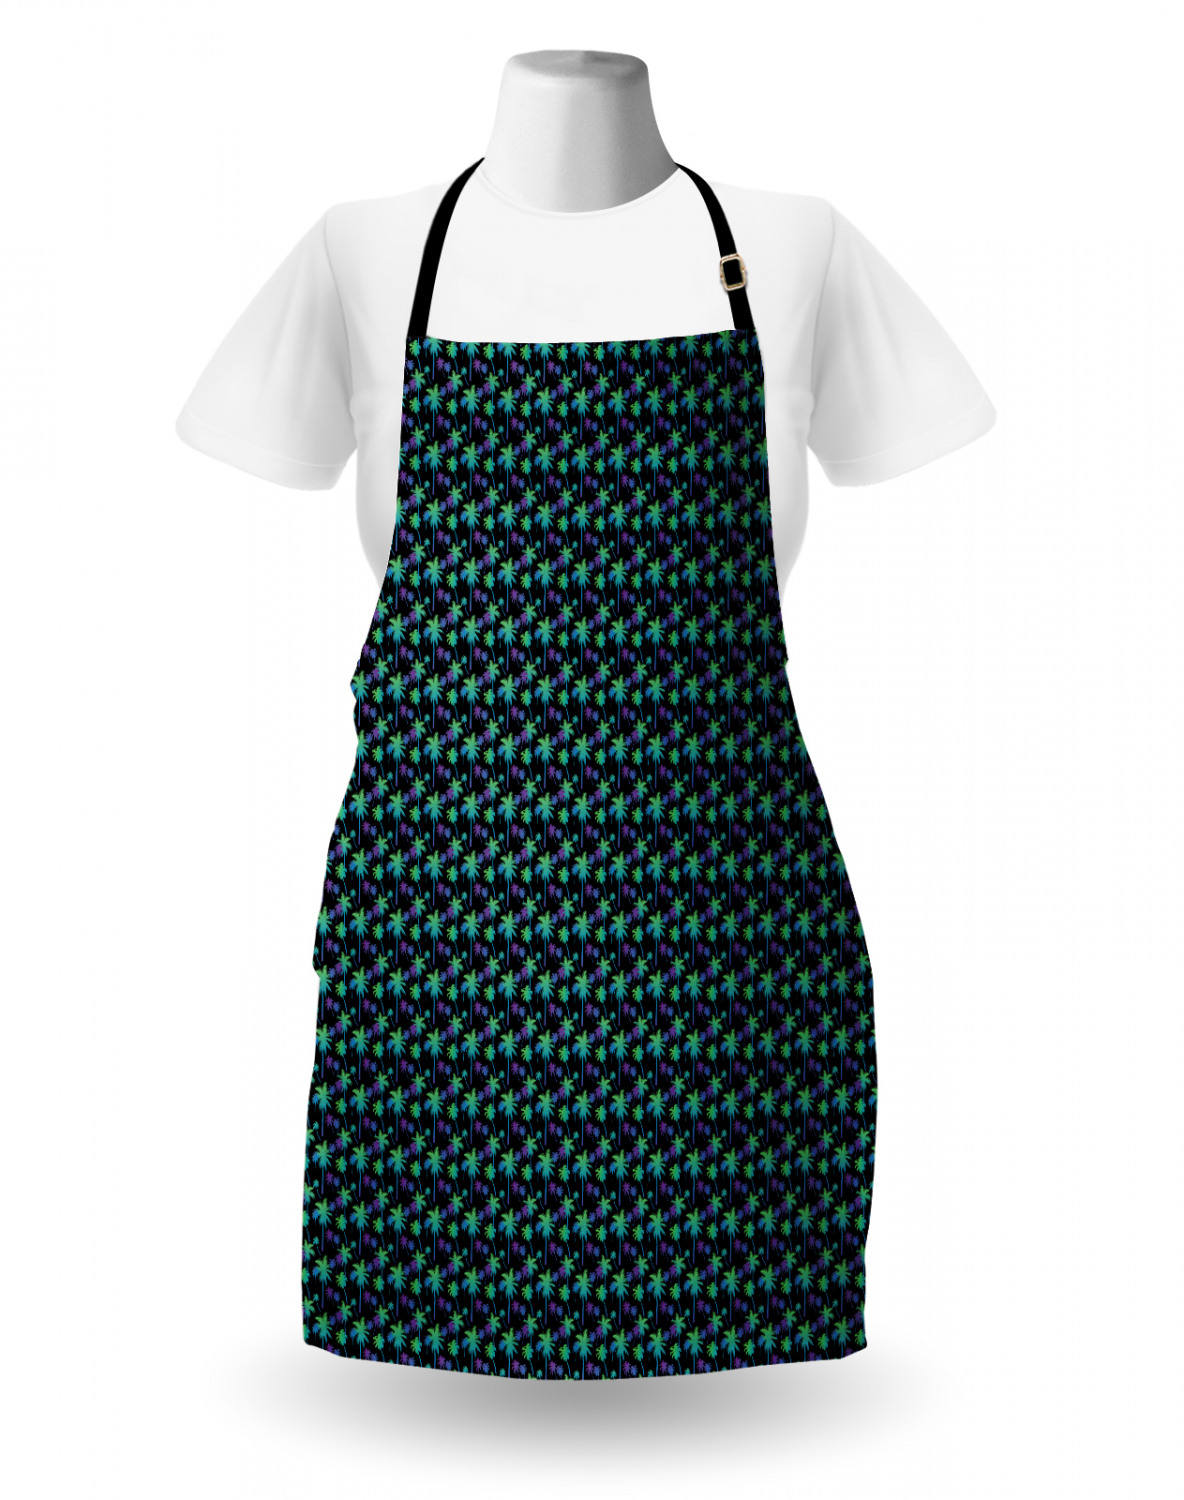 Details about  /Ambesonne Unisex Long Lasting Apron Adjustable Neck for Gardening and Cooking